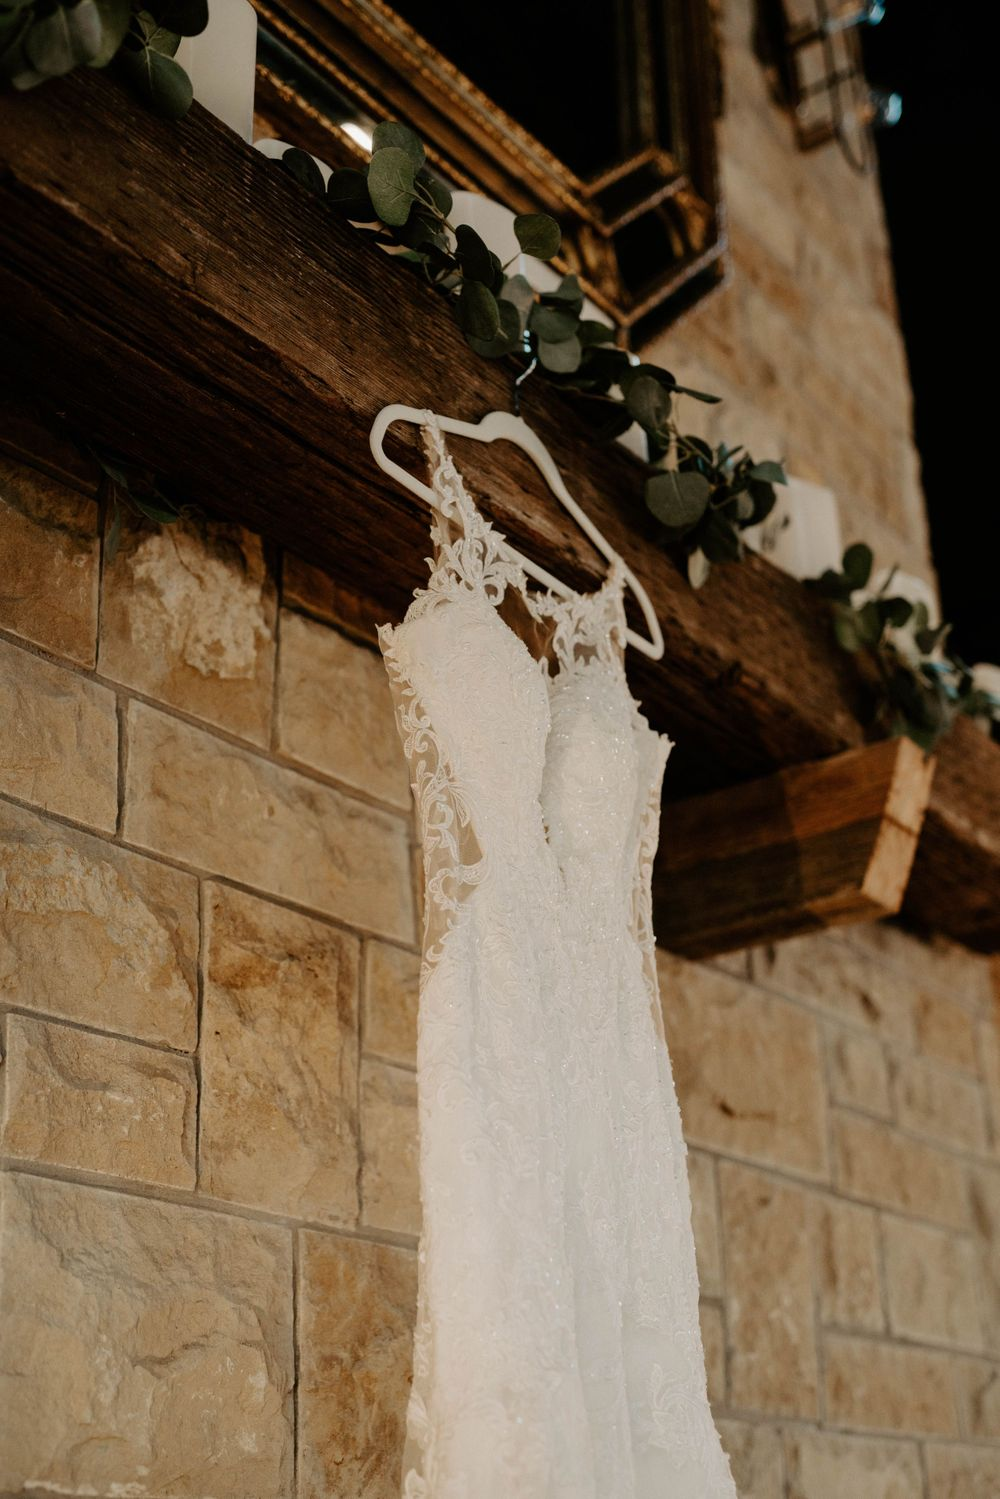 Wedding dress picture inside venue at The Reserve at Ranger Creek Ranch in Seymour, Texas